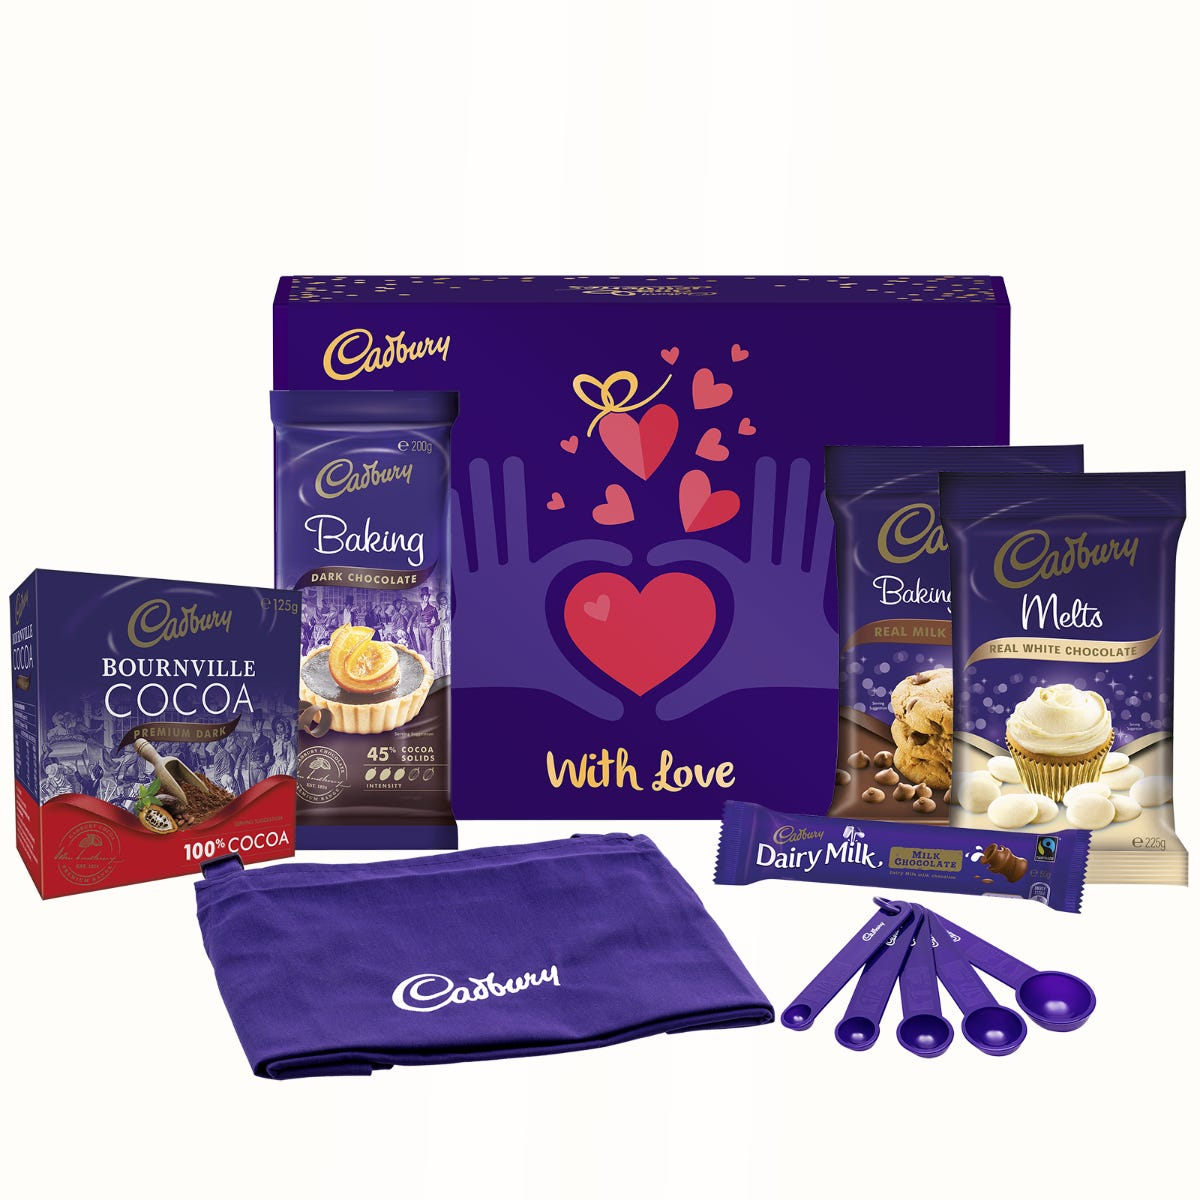 Cadbury Baking Gift Pack - With Love